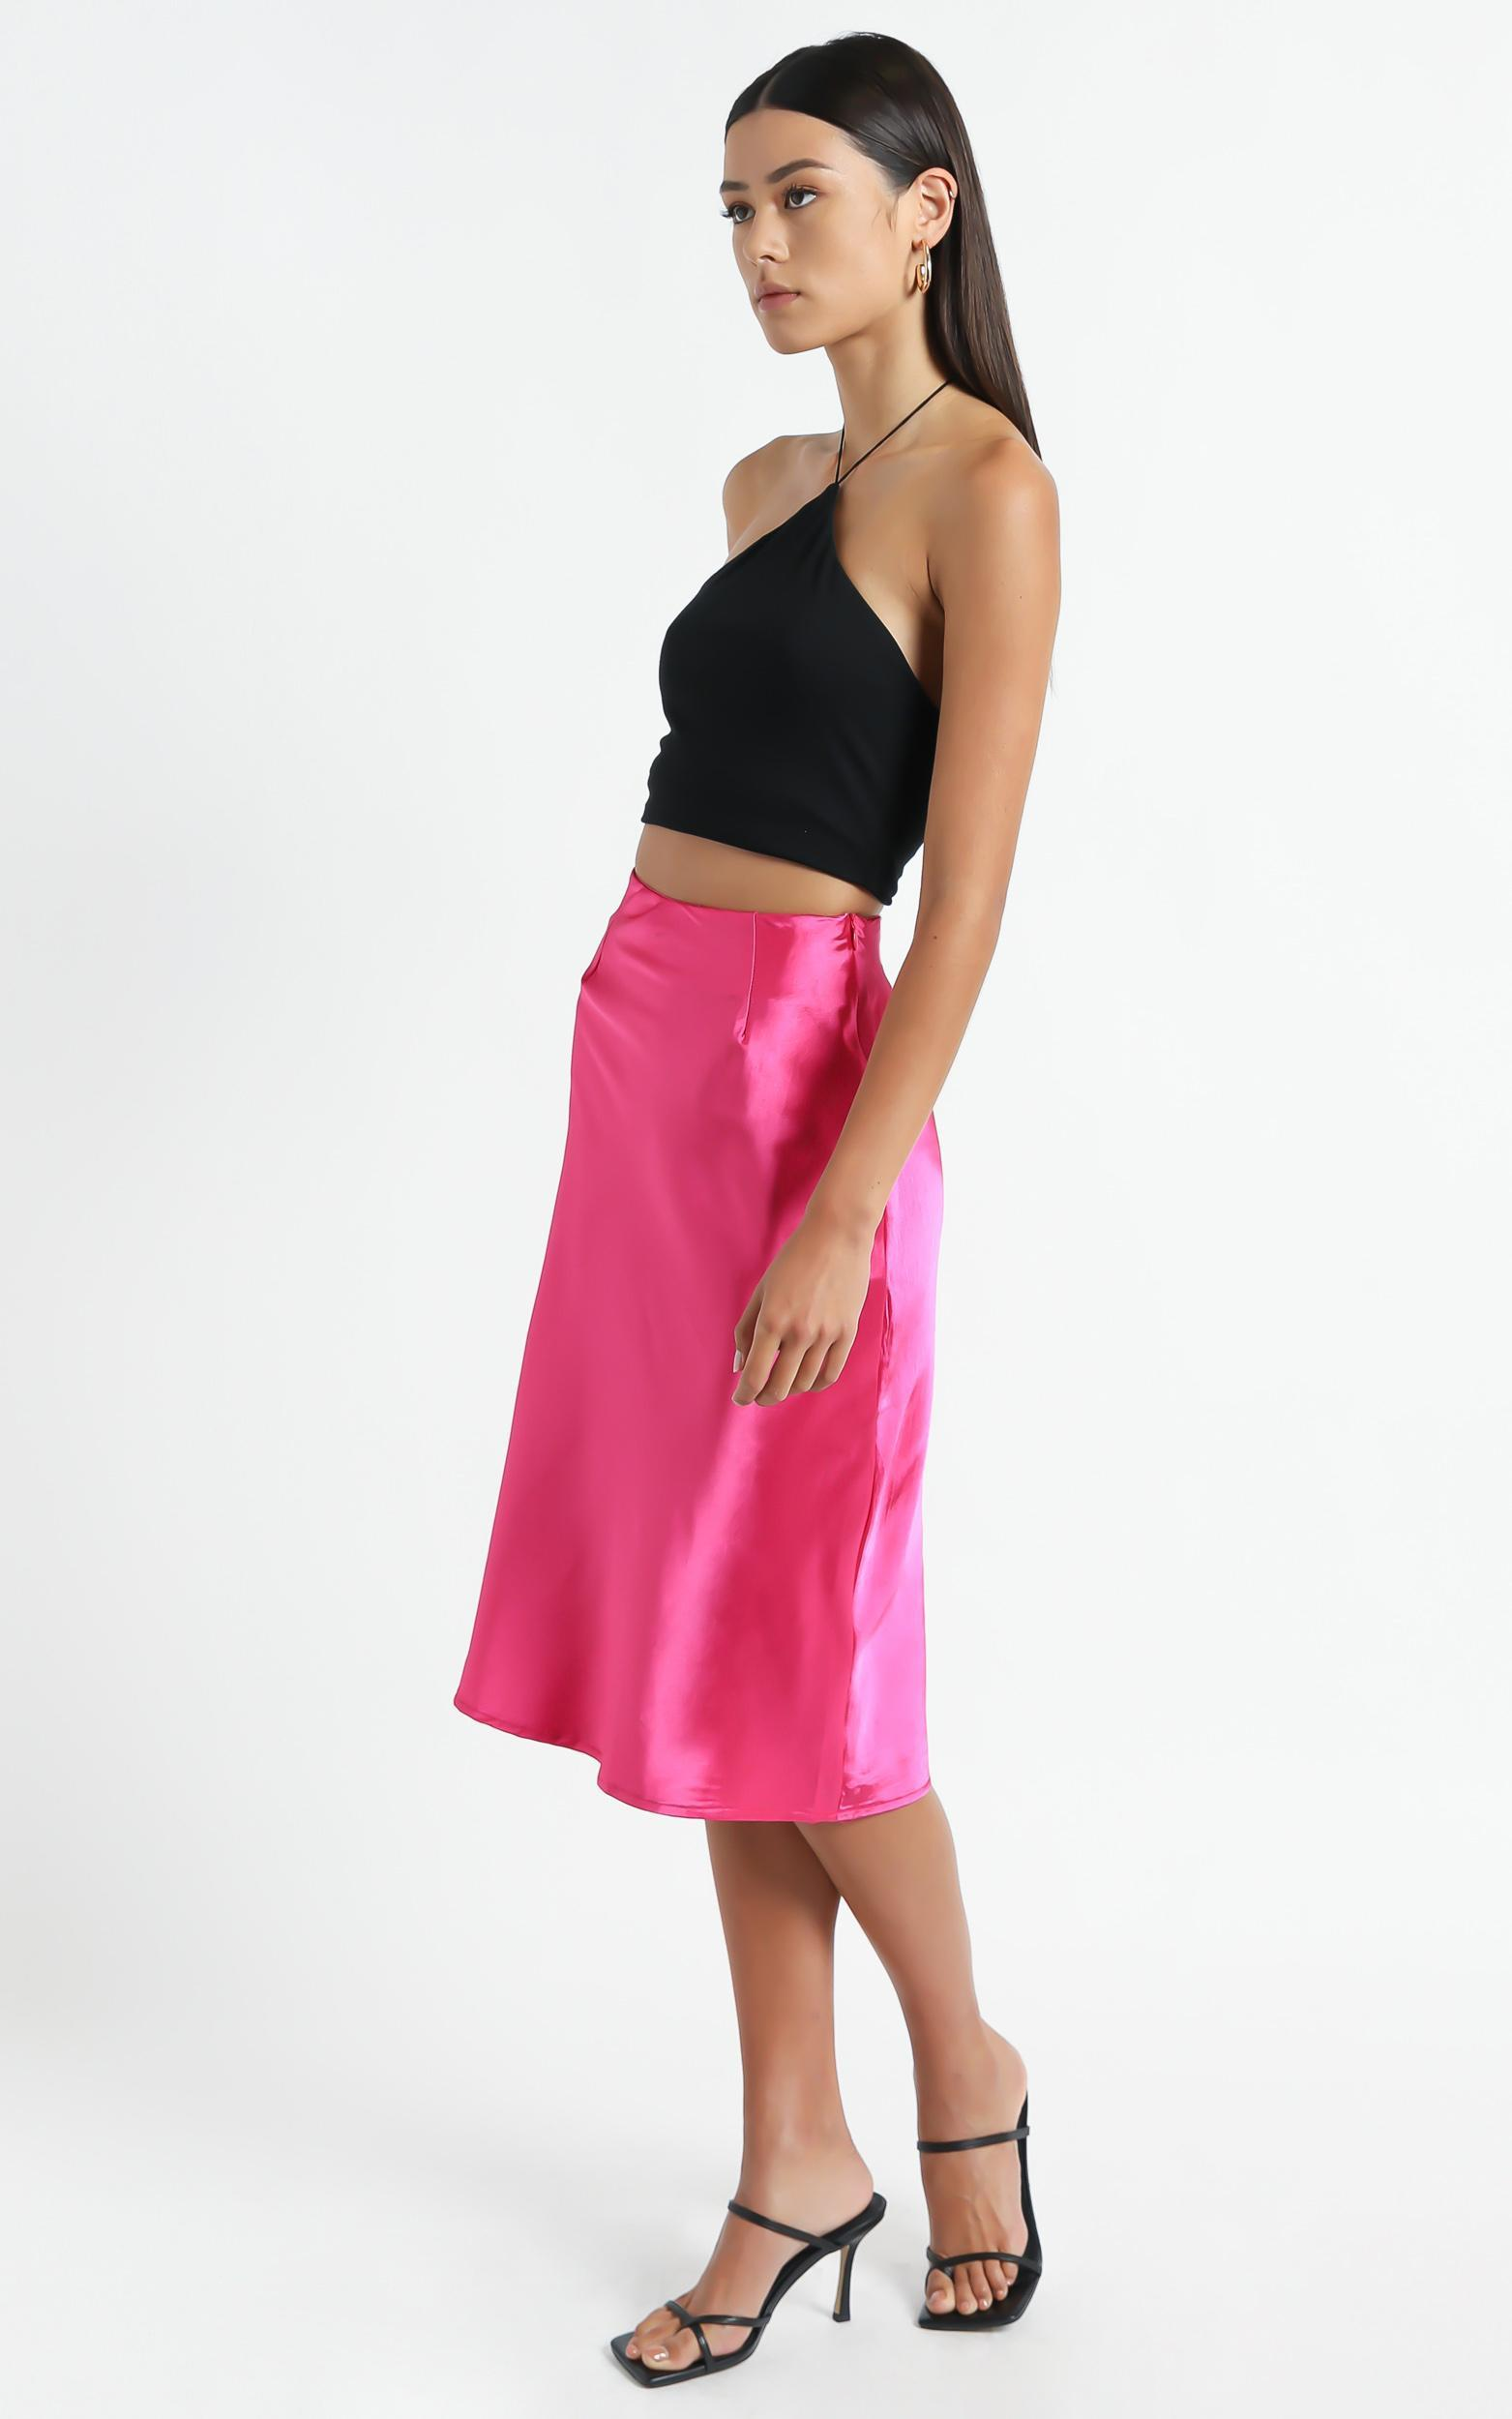 Creating Art Skirt in Hot Pink - 6 (XS), PNK11, hi-res image number null